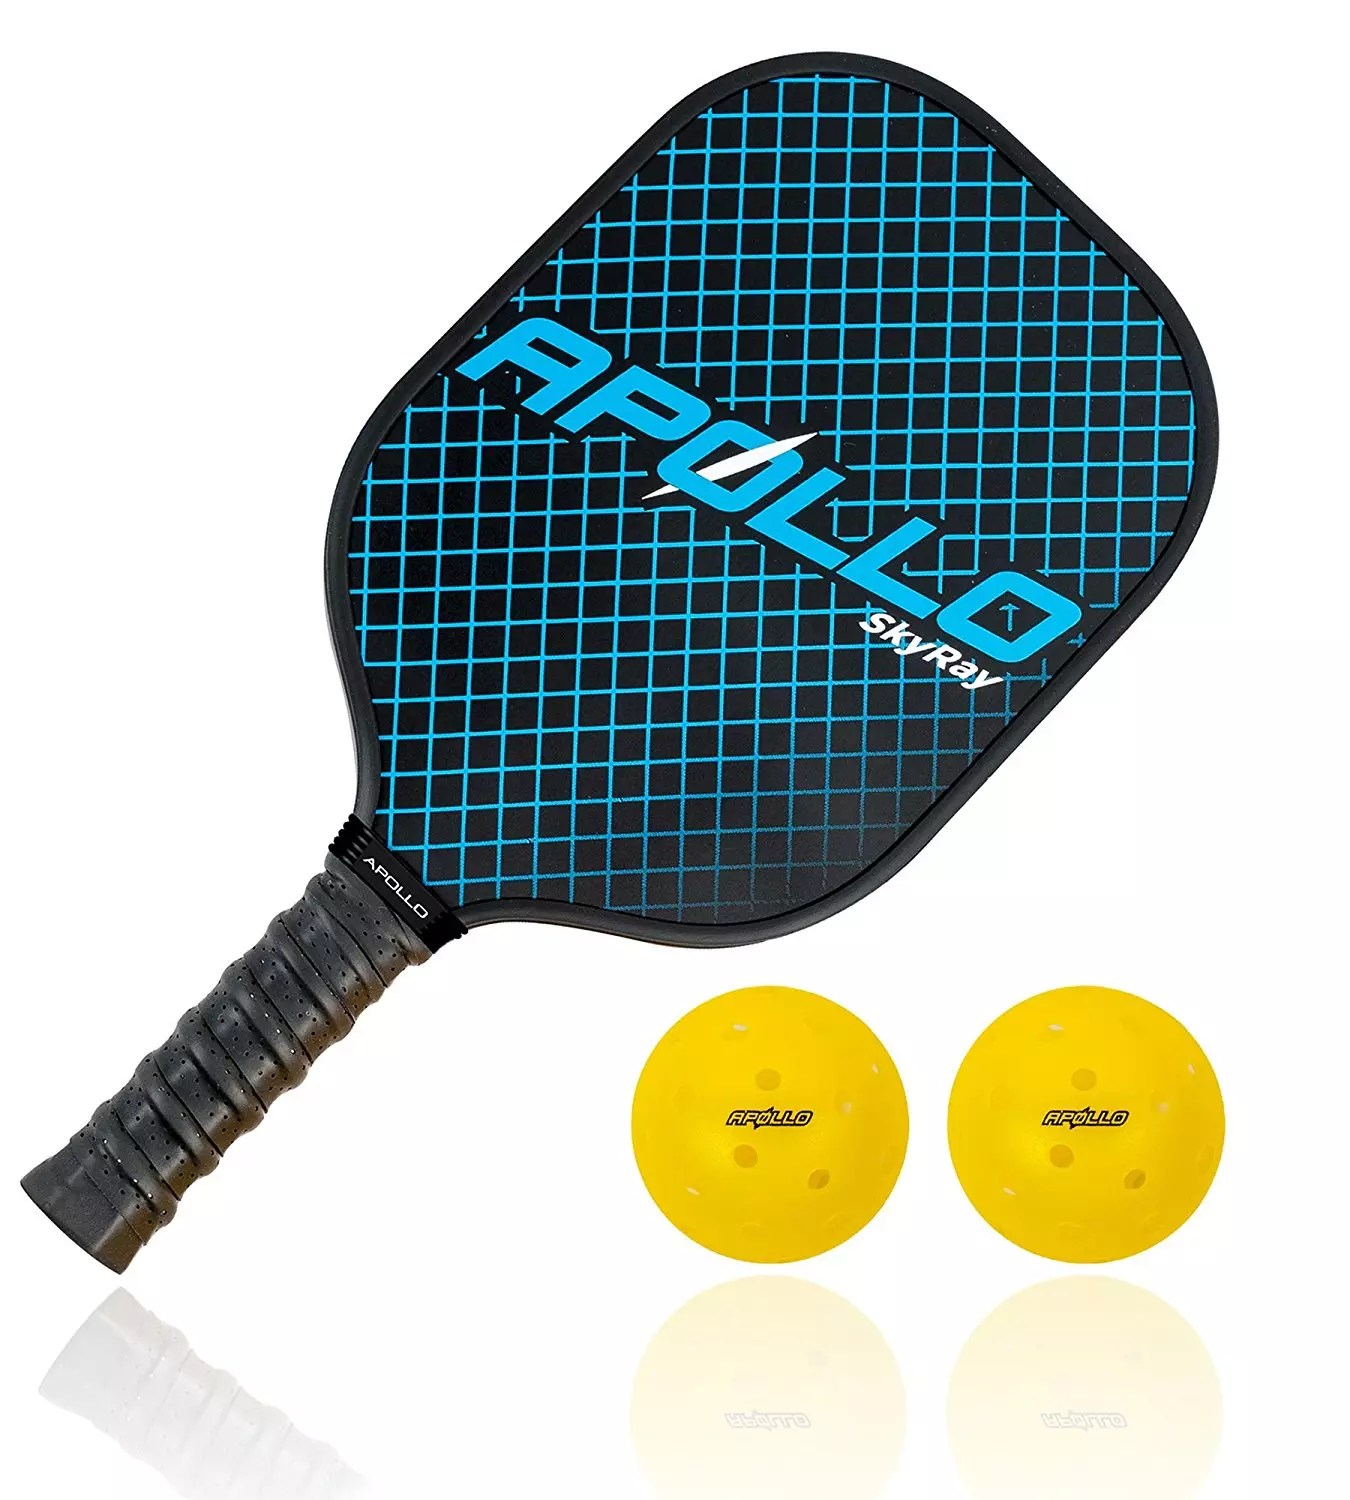 hight resolution of best pickleball paddles 2018 cheap graphite apollo pickle ball paddles